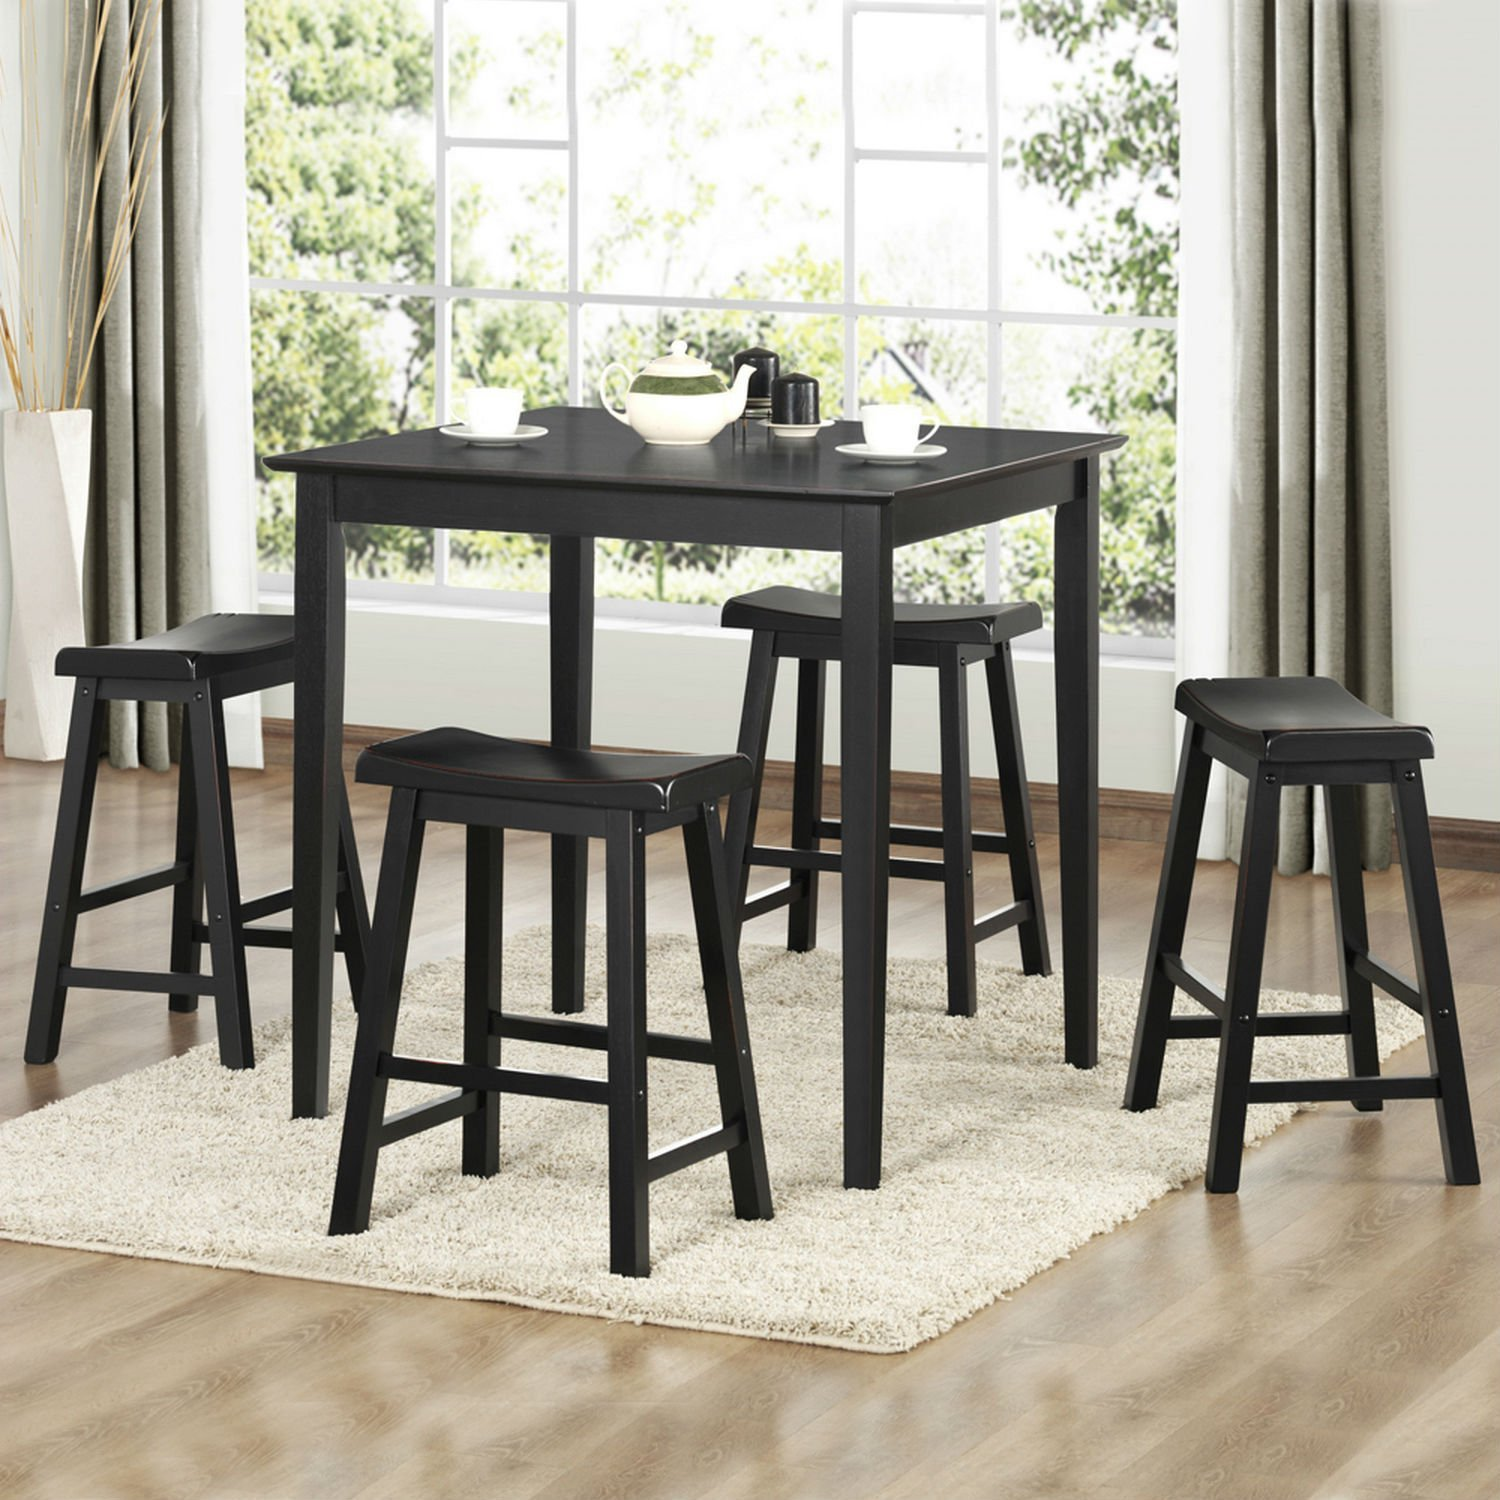 Get Quotations · 5 Piece Pub Set comes with 4 saddle stool bar seats and 1 dining dinner table & Cheap Pub Bar Table Set find Pub Bar Table Set deals on line at ...